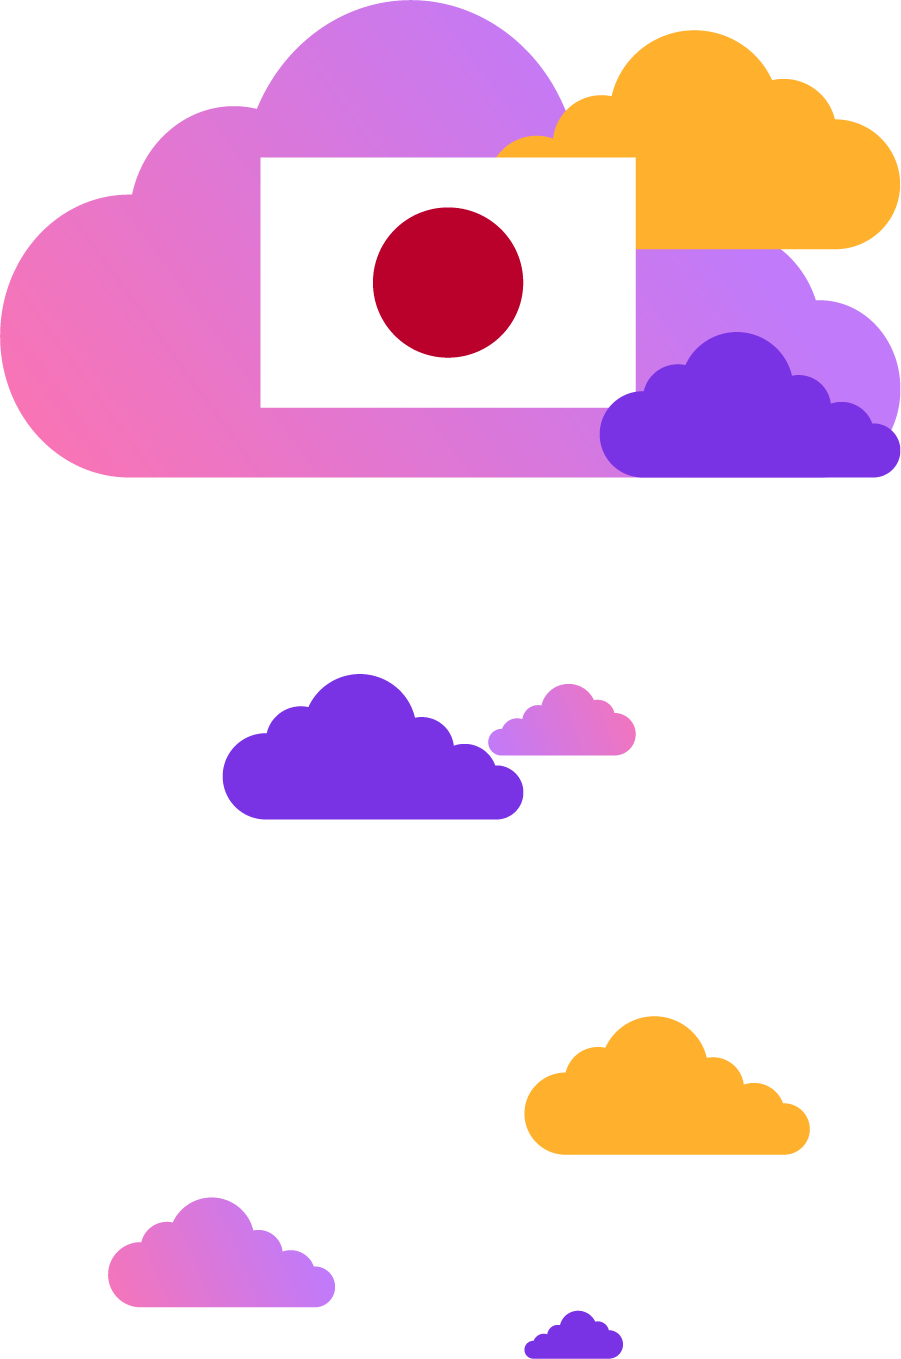 Japanese flag on top of colorful clouds